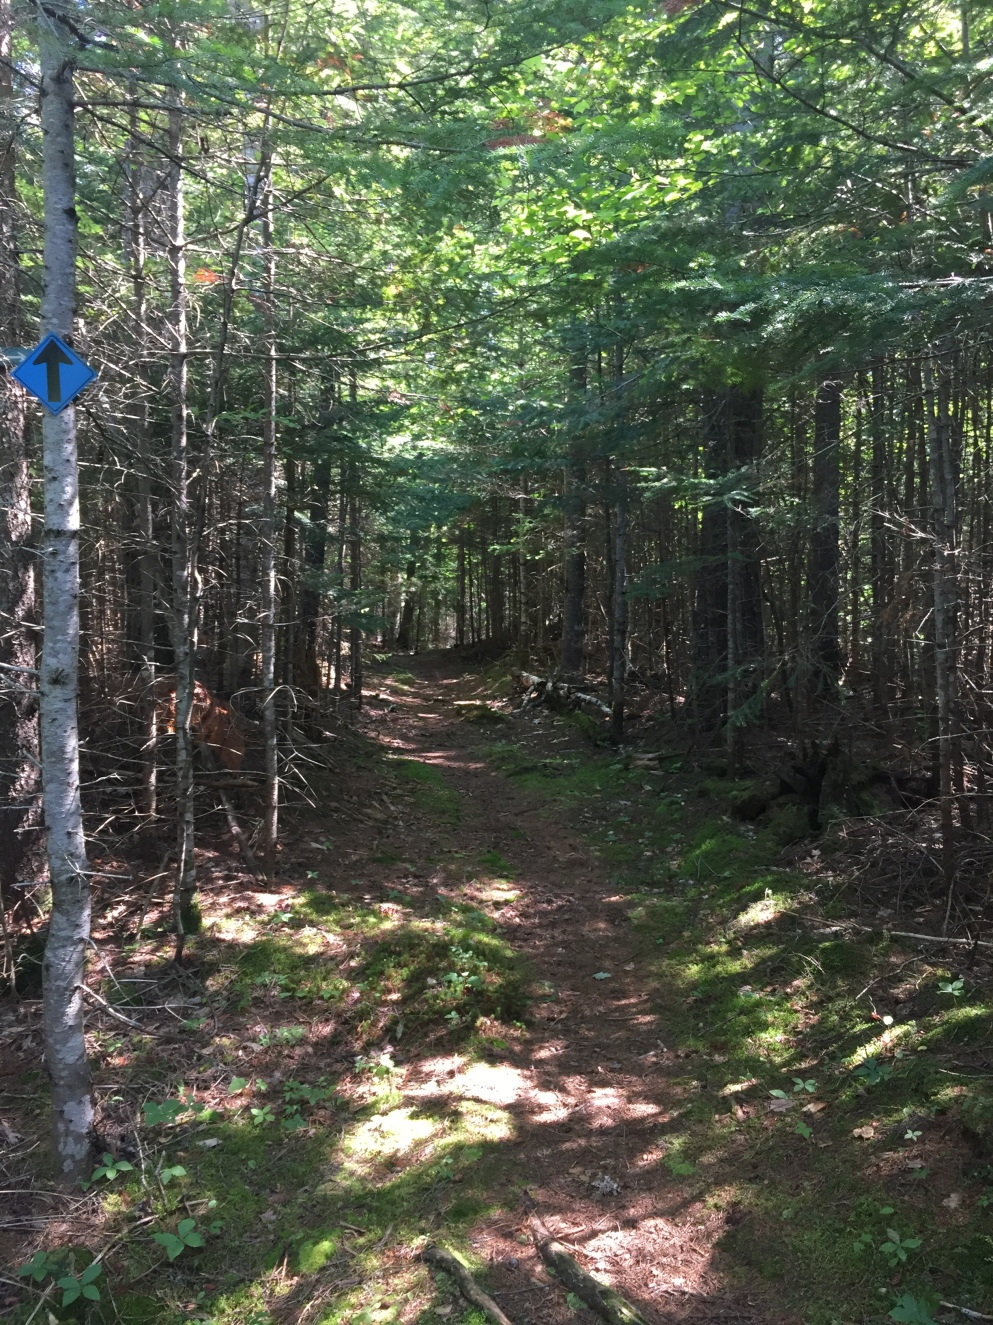 Pond Loop Trail, marked with blue signs